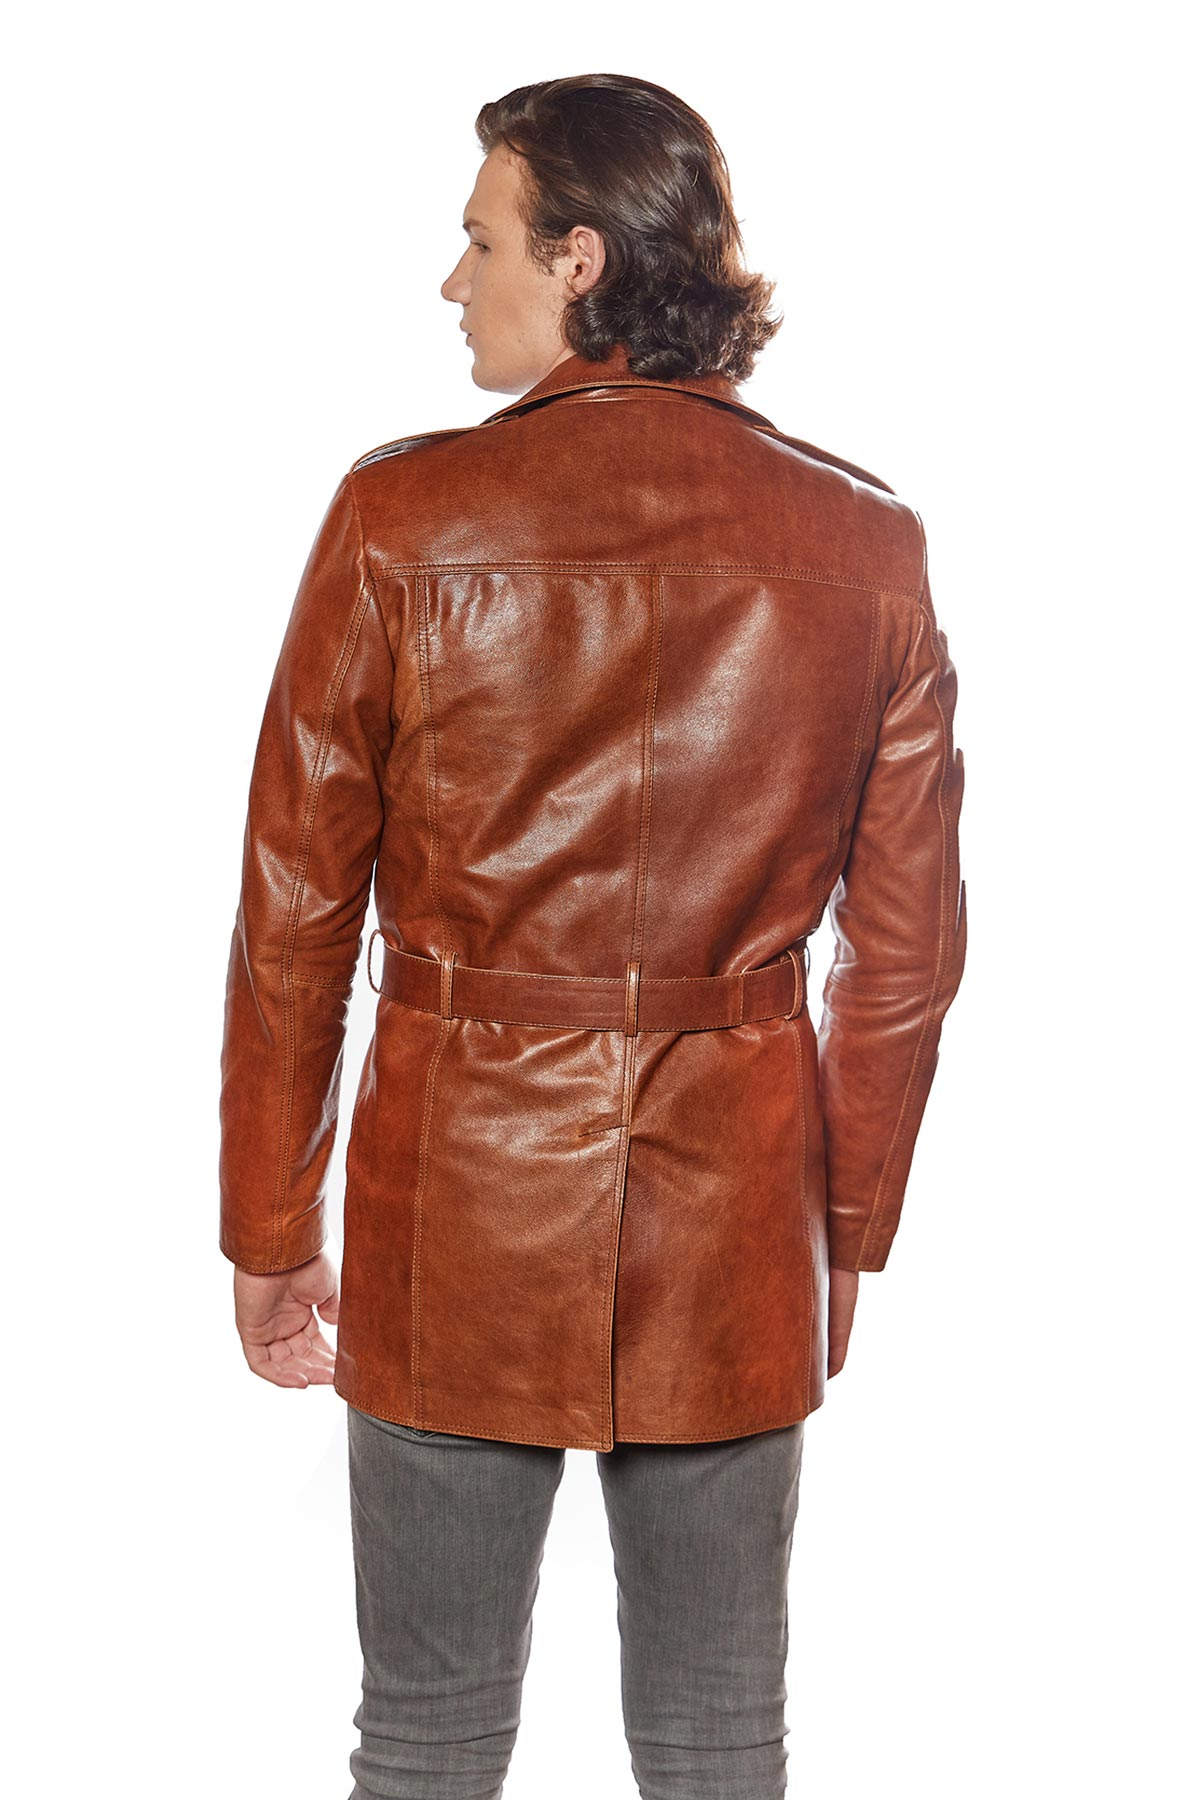 brown leather jacket outfit mens